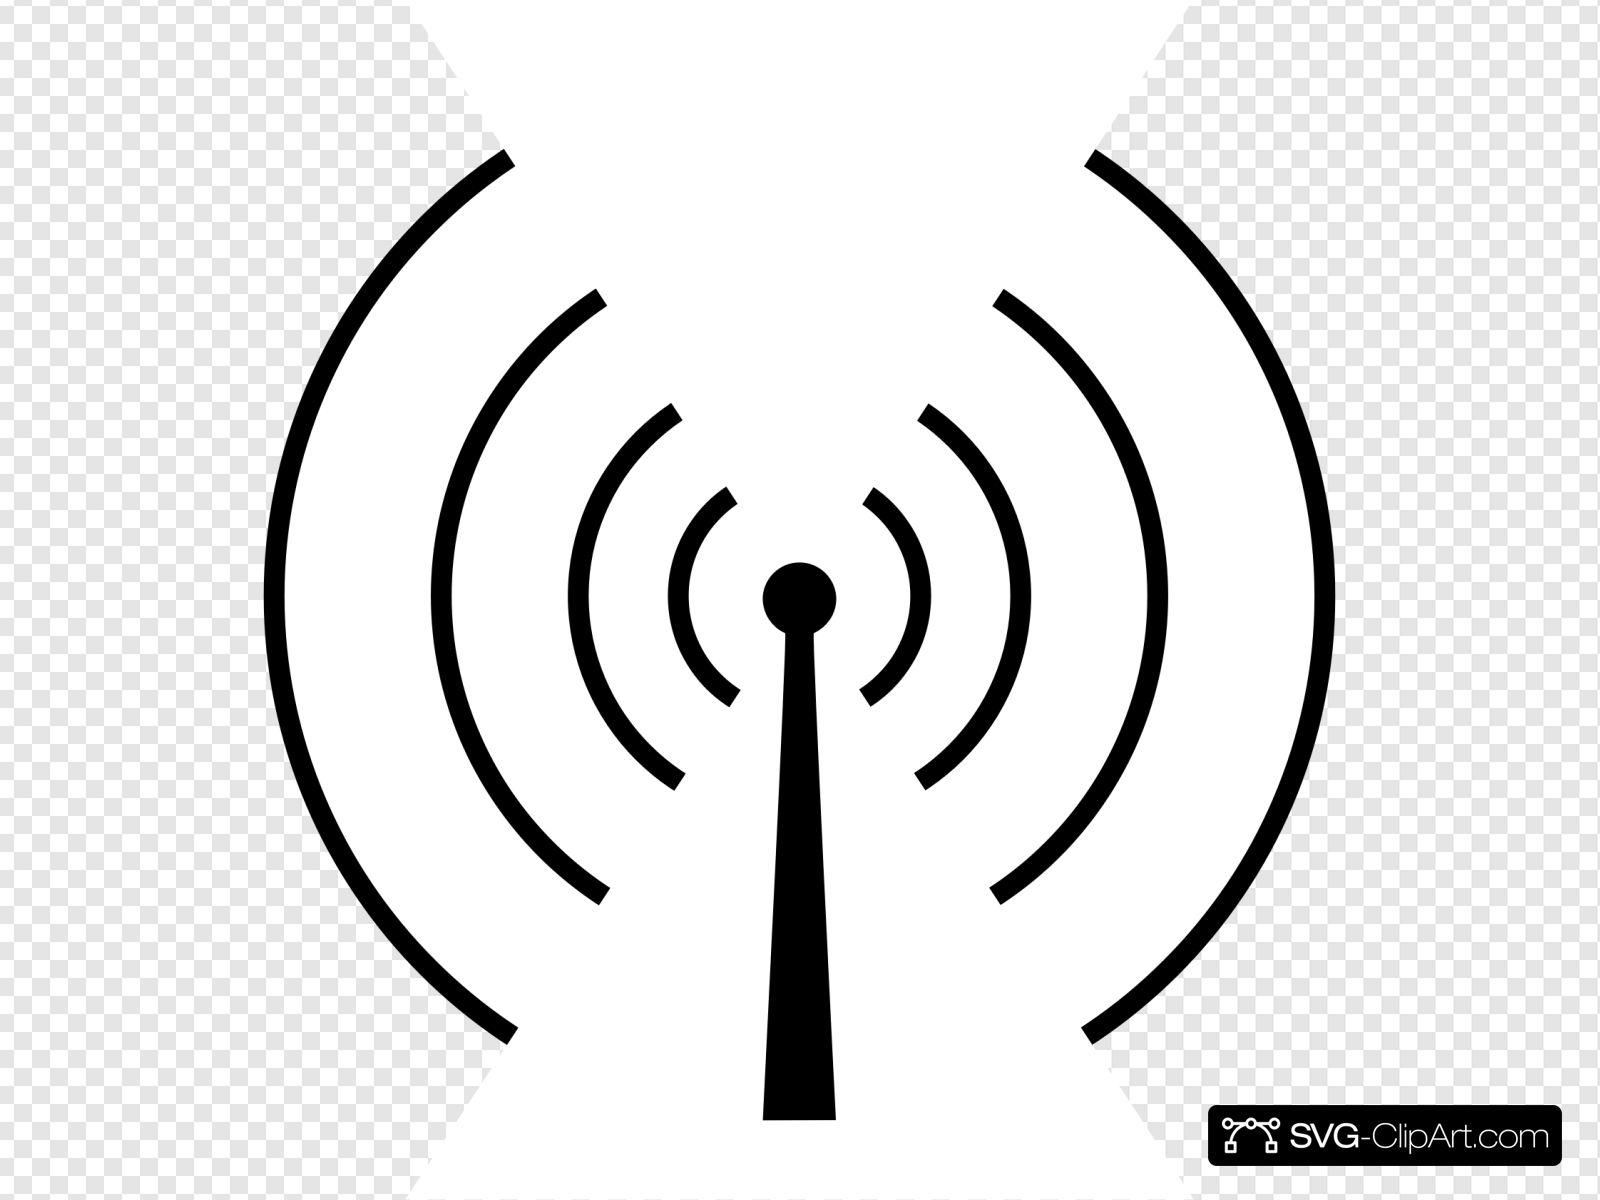 Radio Tower Circluar Clip art, Icon and SVG.